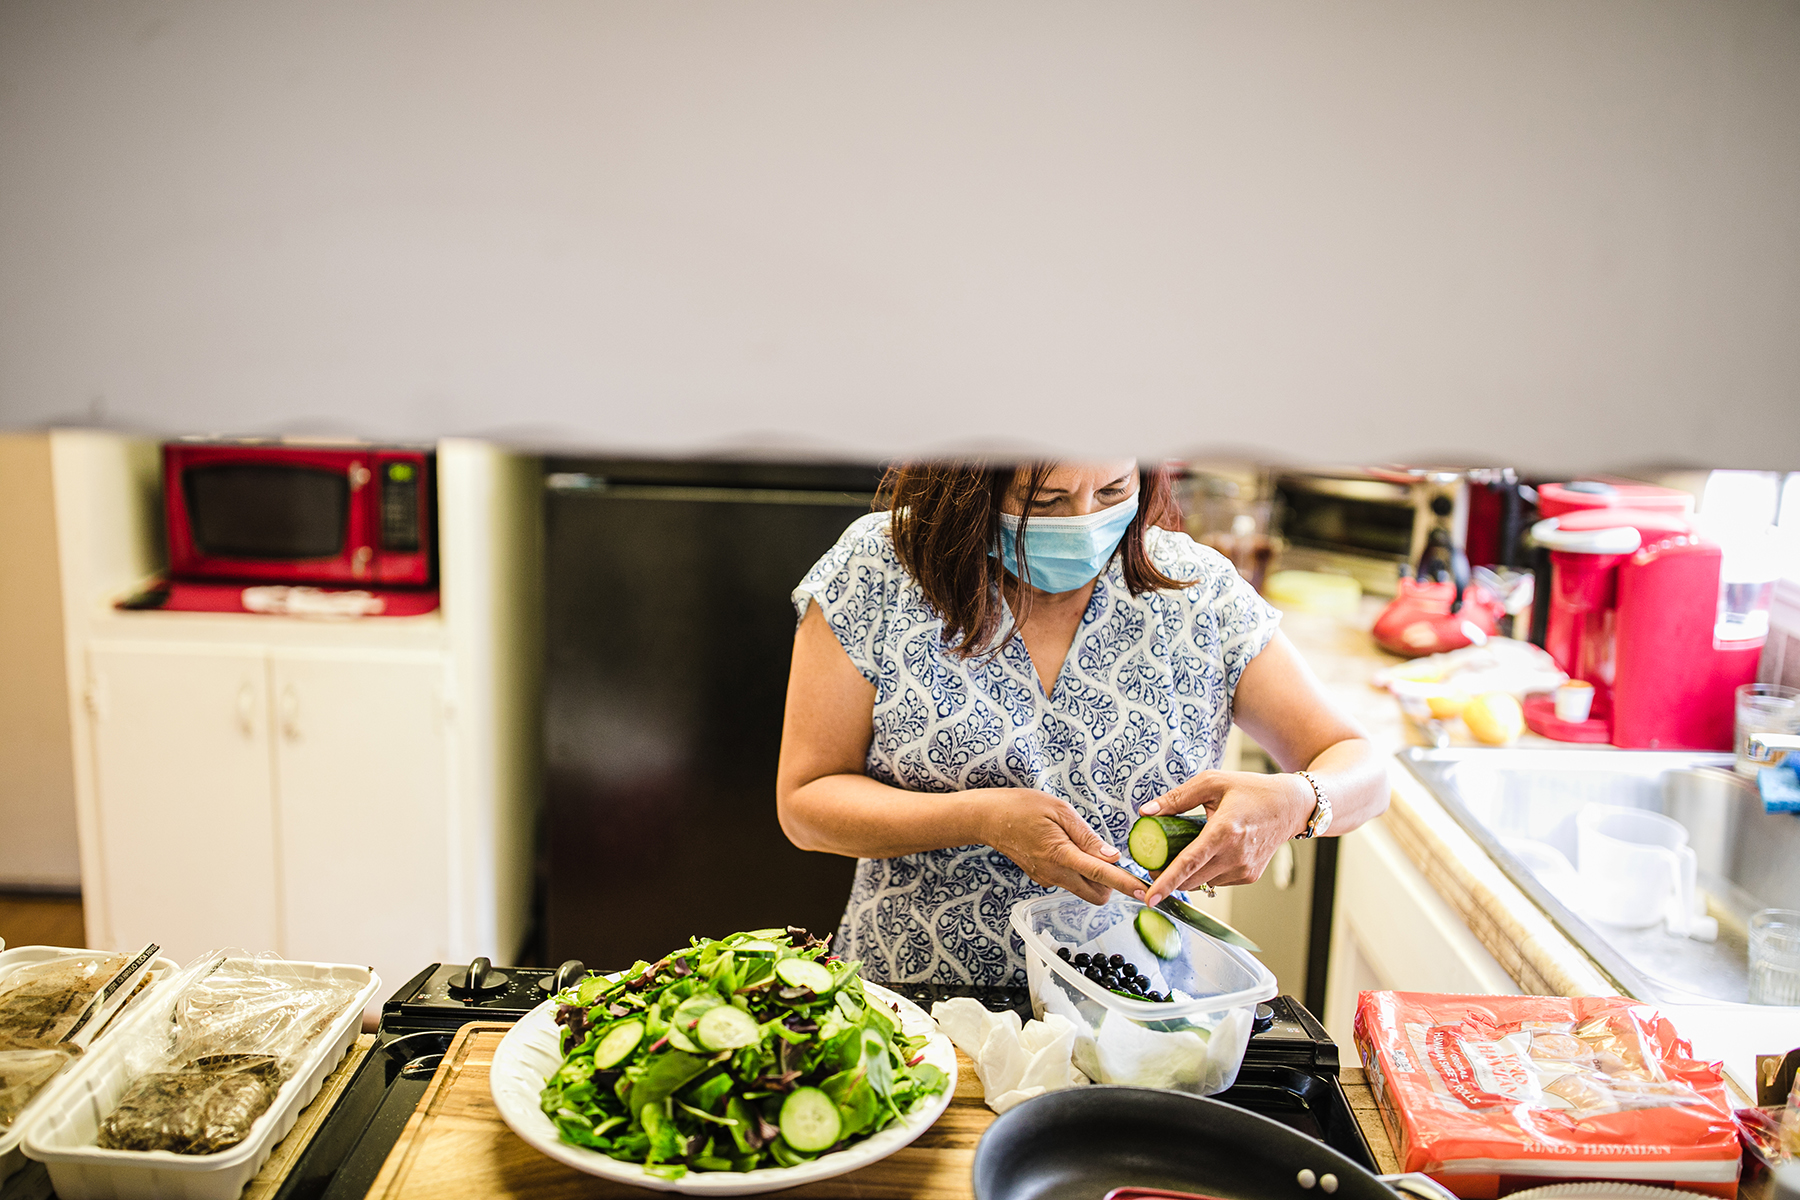 Image from an At-Home Elopement in Antioch, California | In the kitchen, the bride's mother helps out by preparing dinner